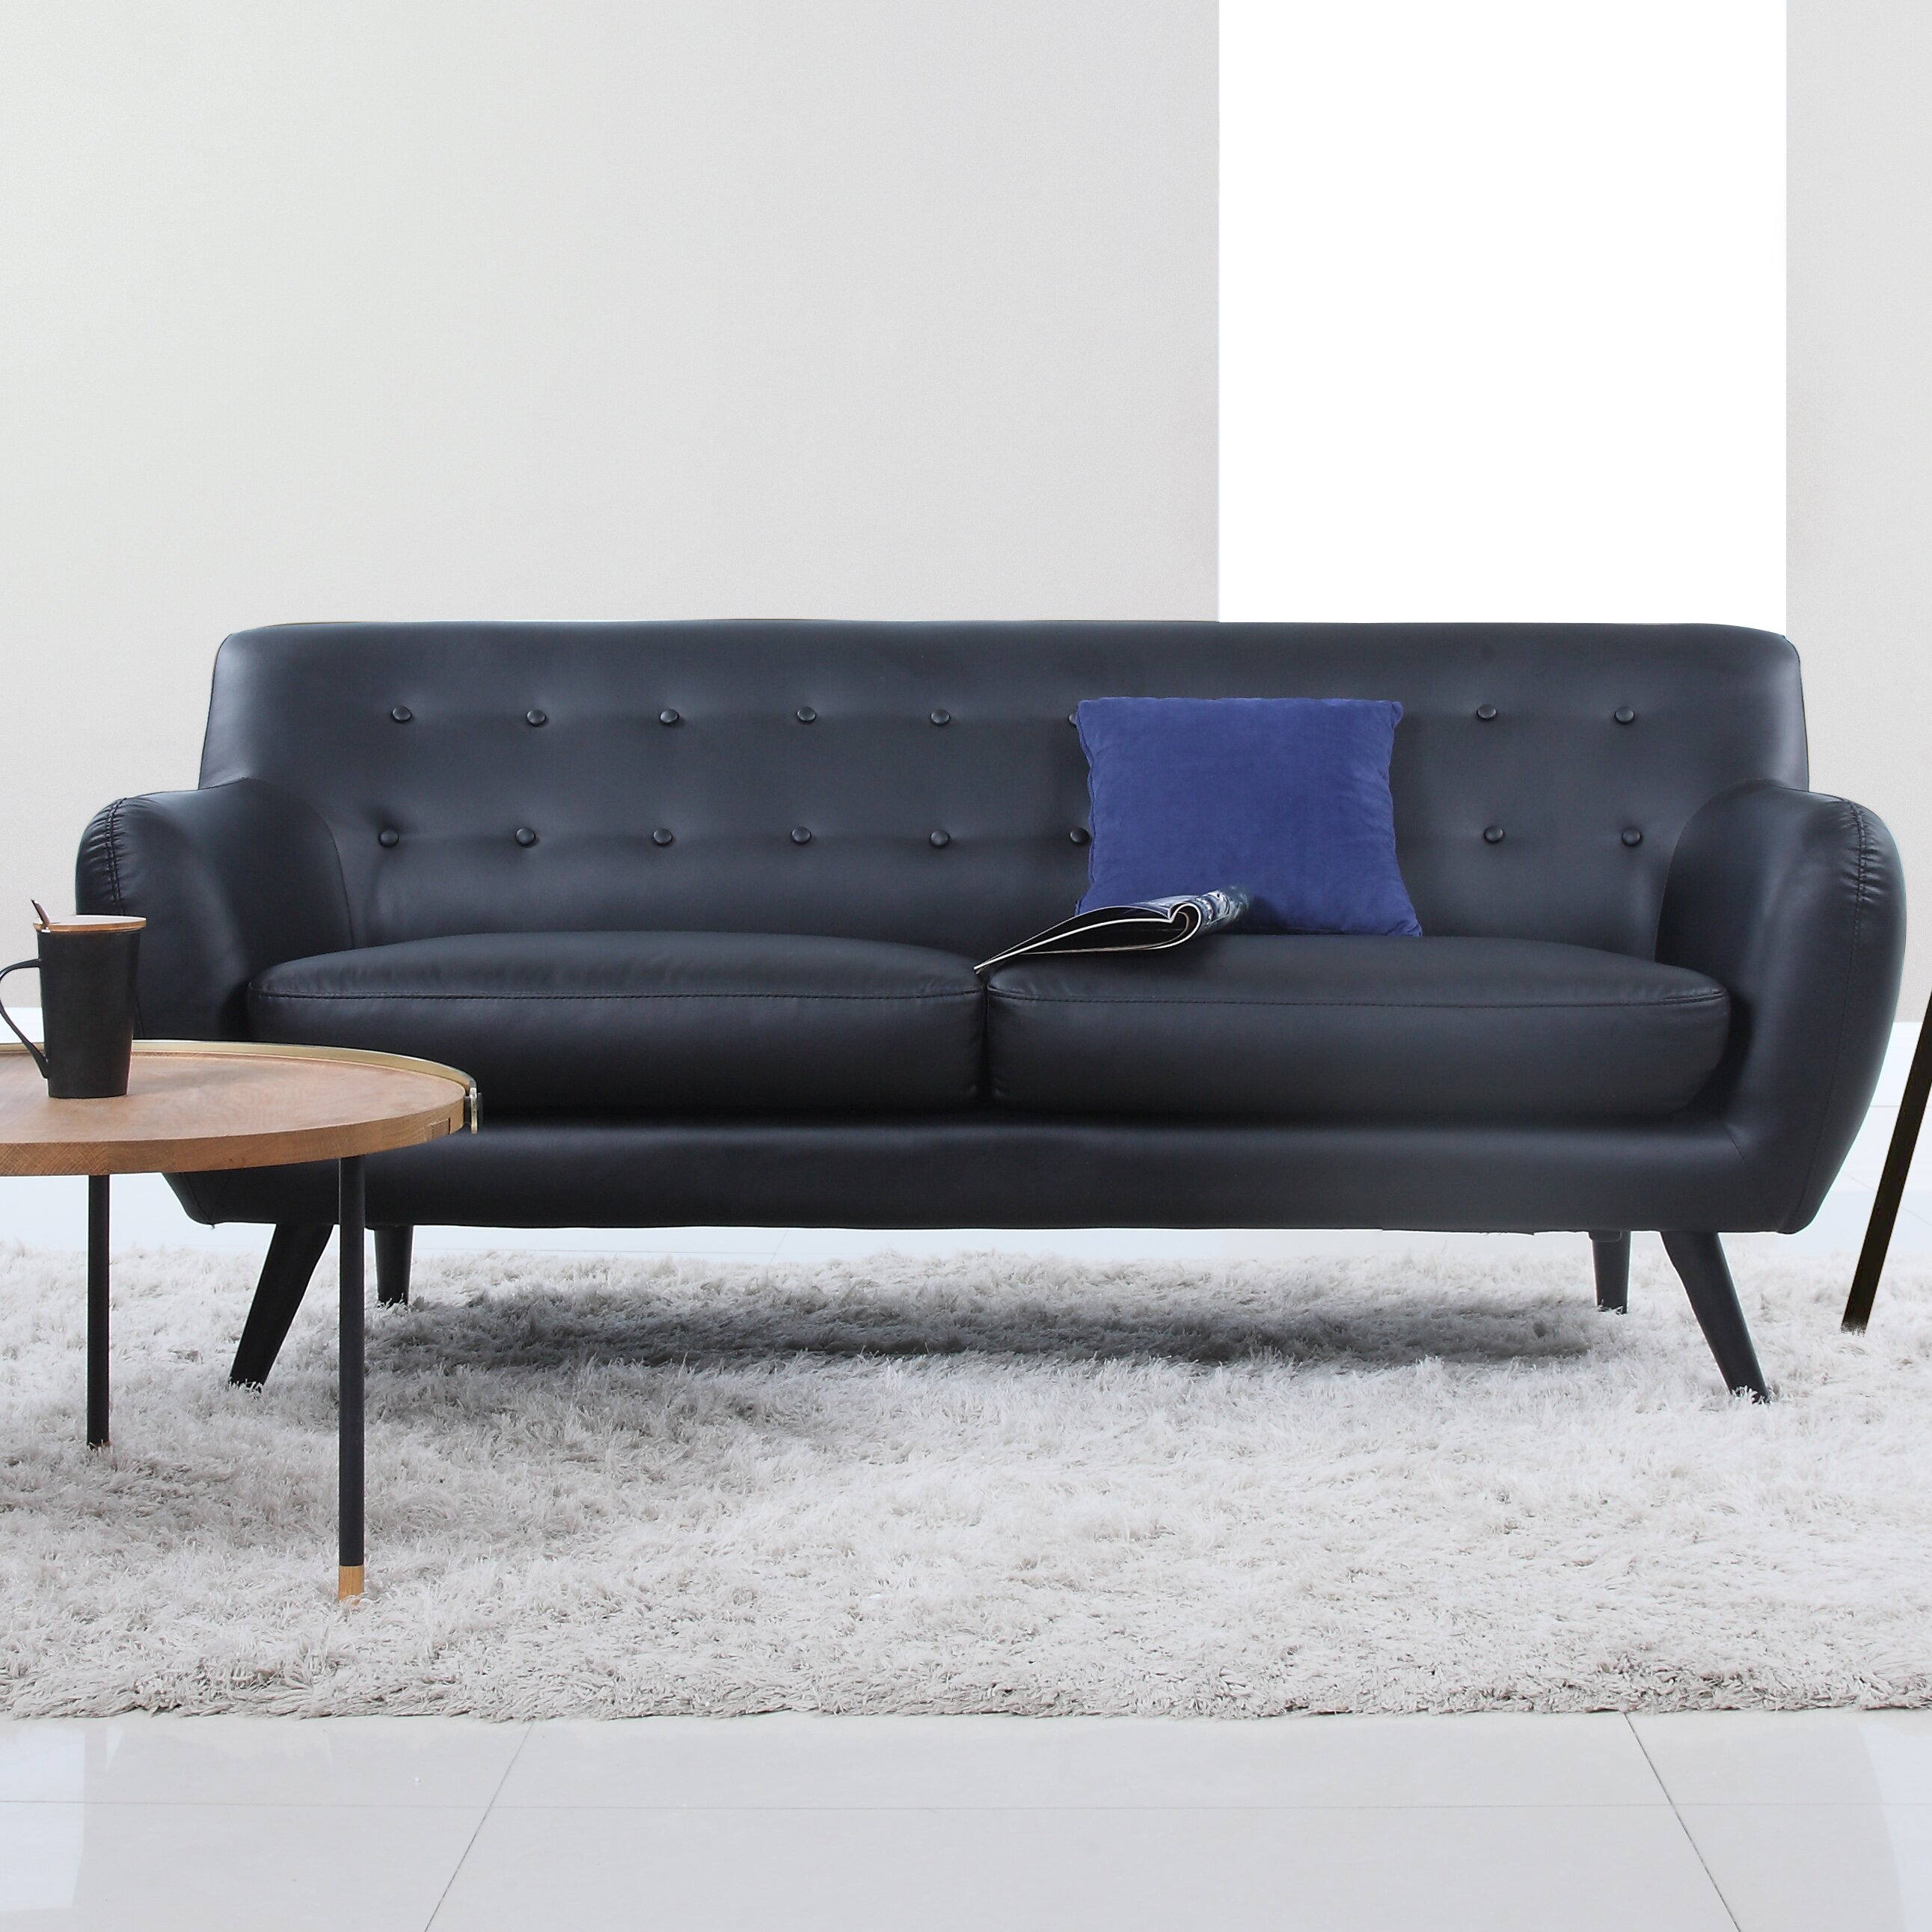 madison home usa mid century modern tufted sofa reviews. Black Bedroom Furniture Sets. Home Design Ideas